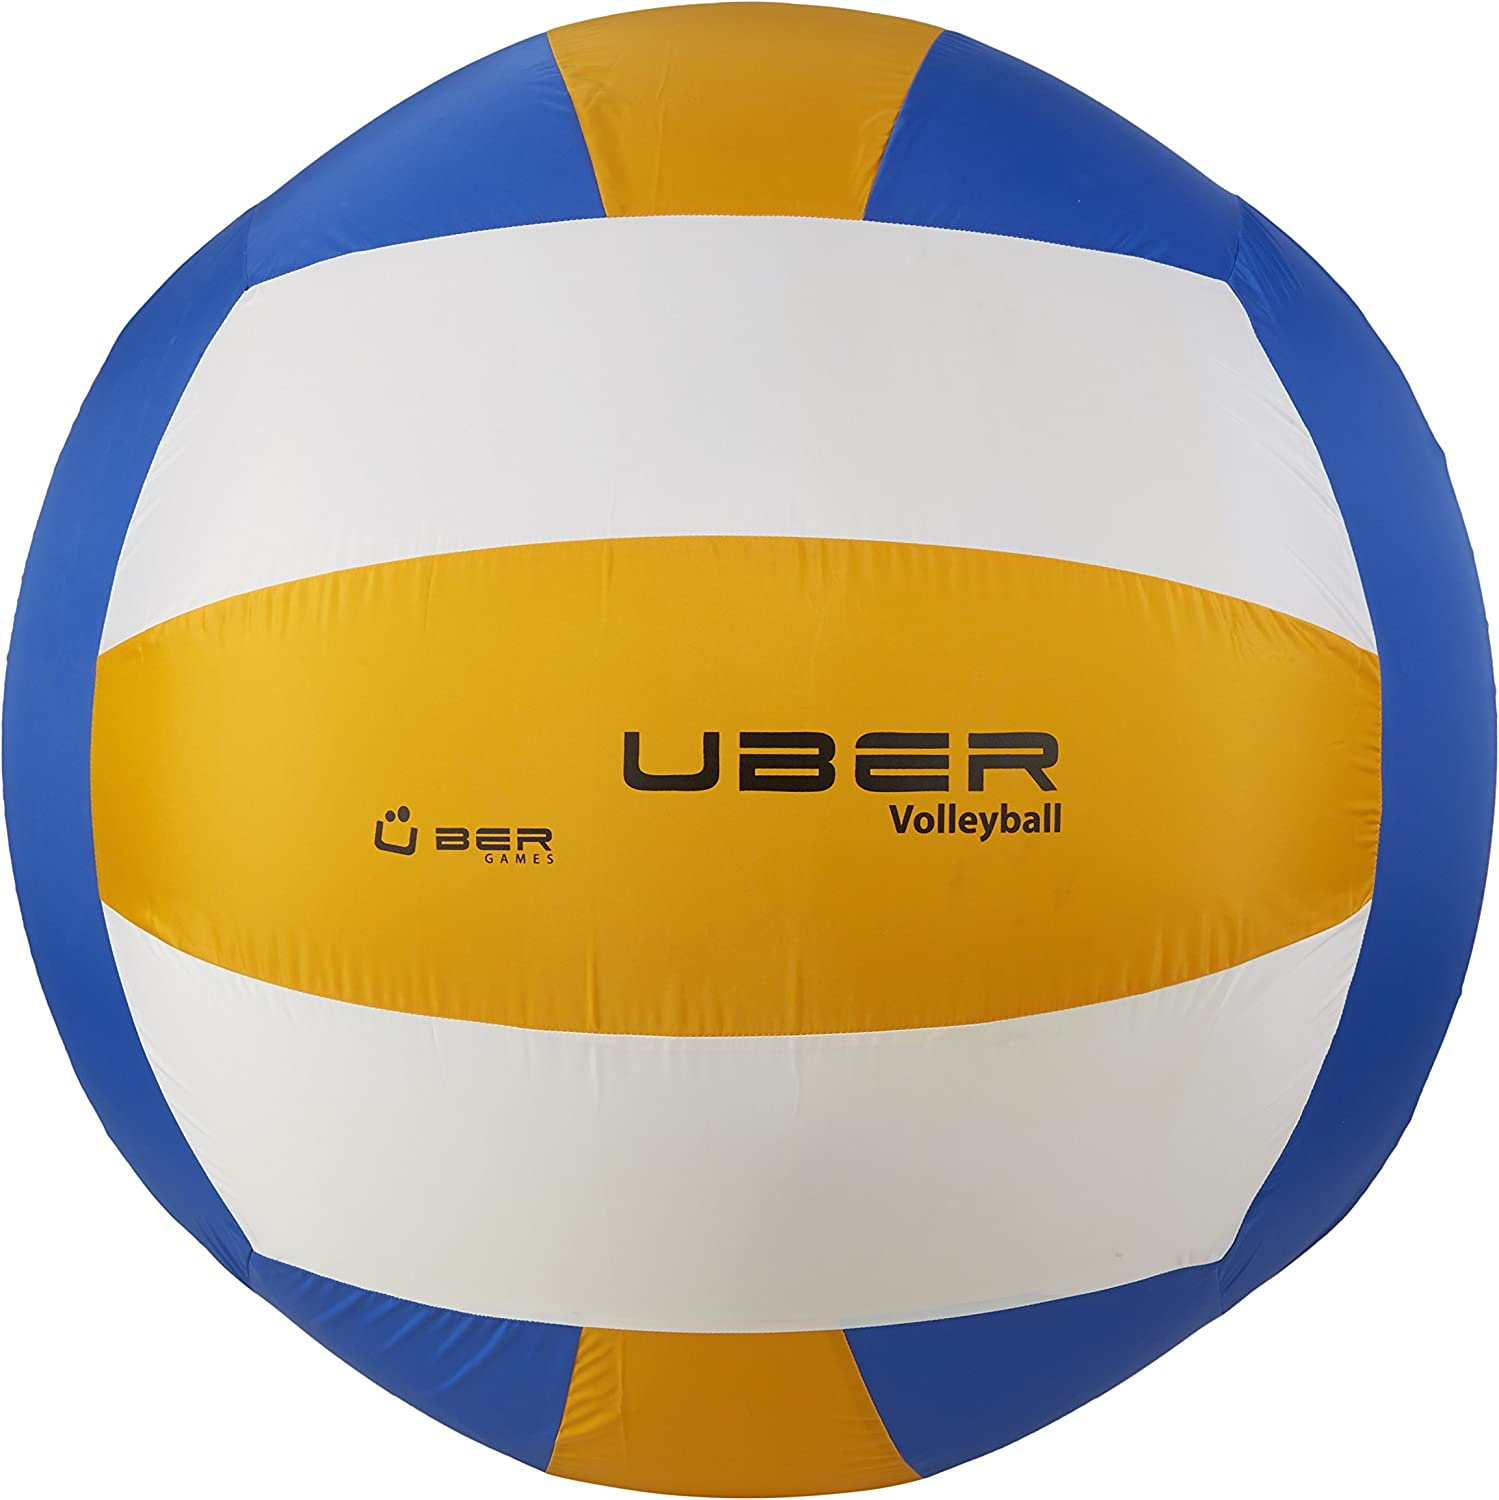 Uber Games Giant Volleyball  13ft Circumference